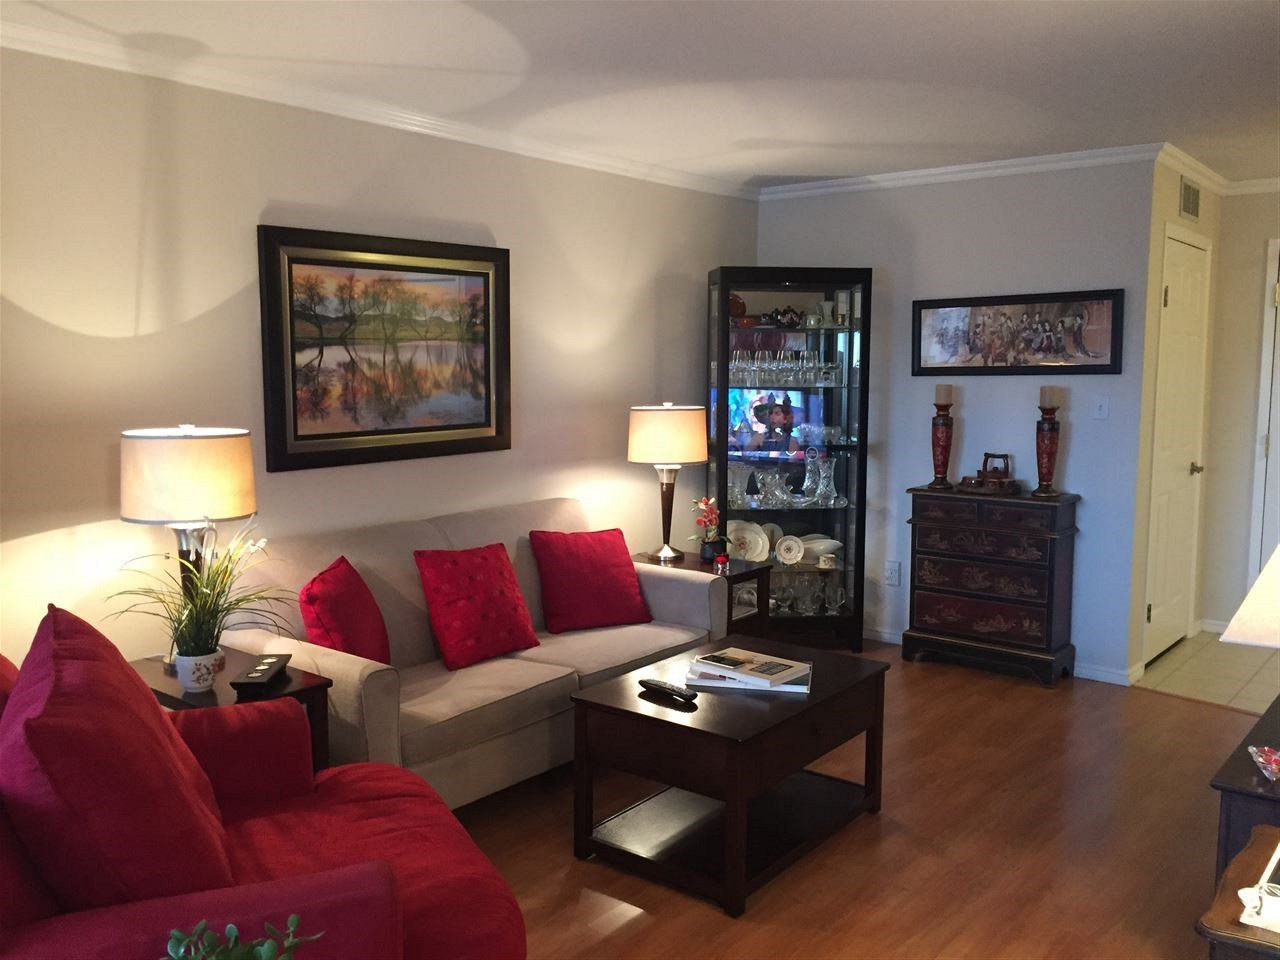 "Main Photo: 326 32853 LANDEAU Place in Abbotsford: Central Abbotsford Condo for sale in ""Park Place"" : MLS®# R2117200"